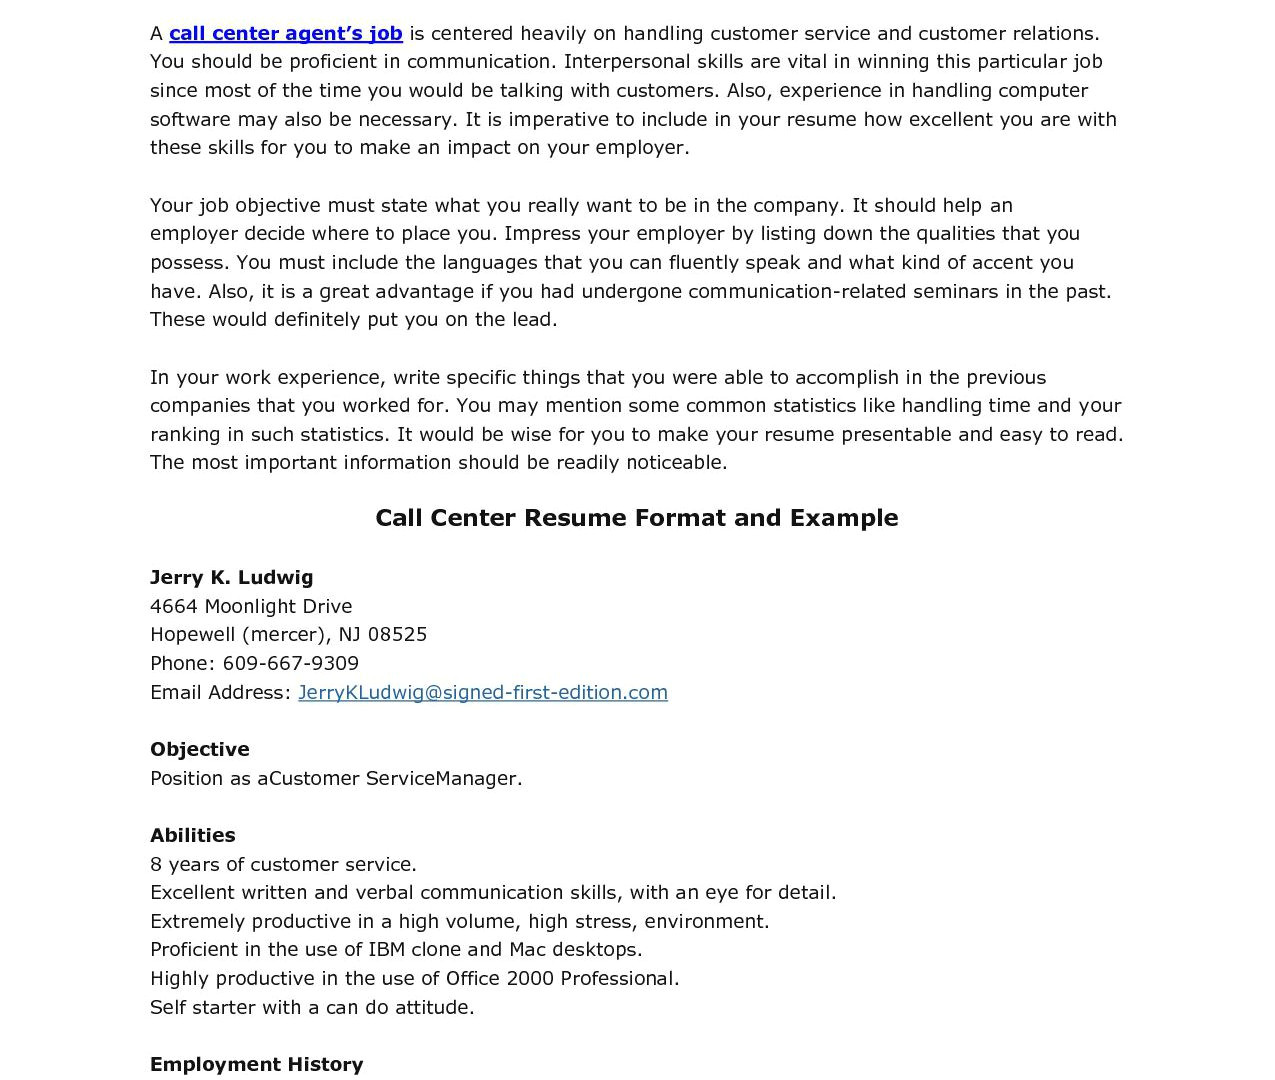 resume sample for call center agent with experience for free pay to